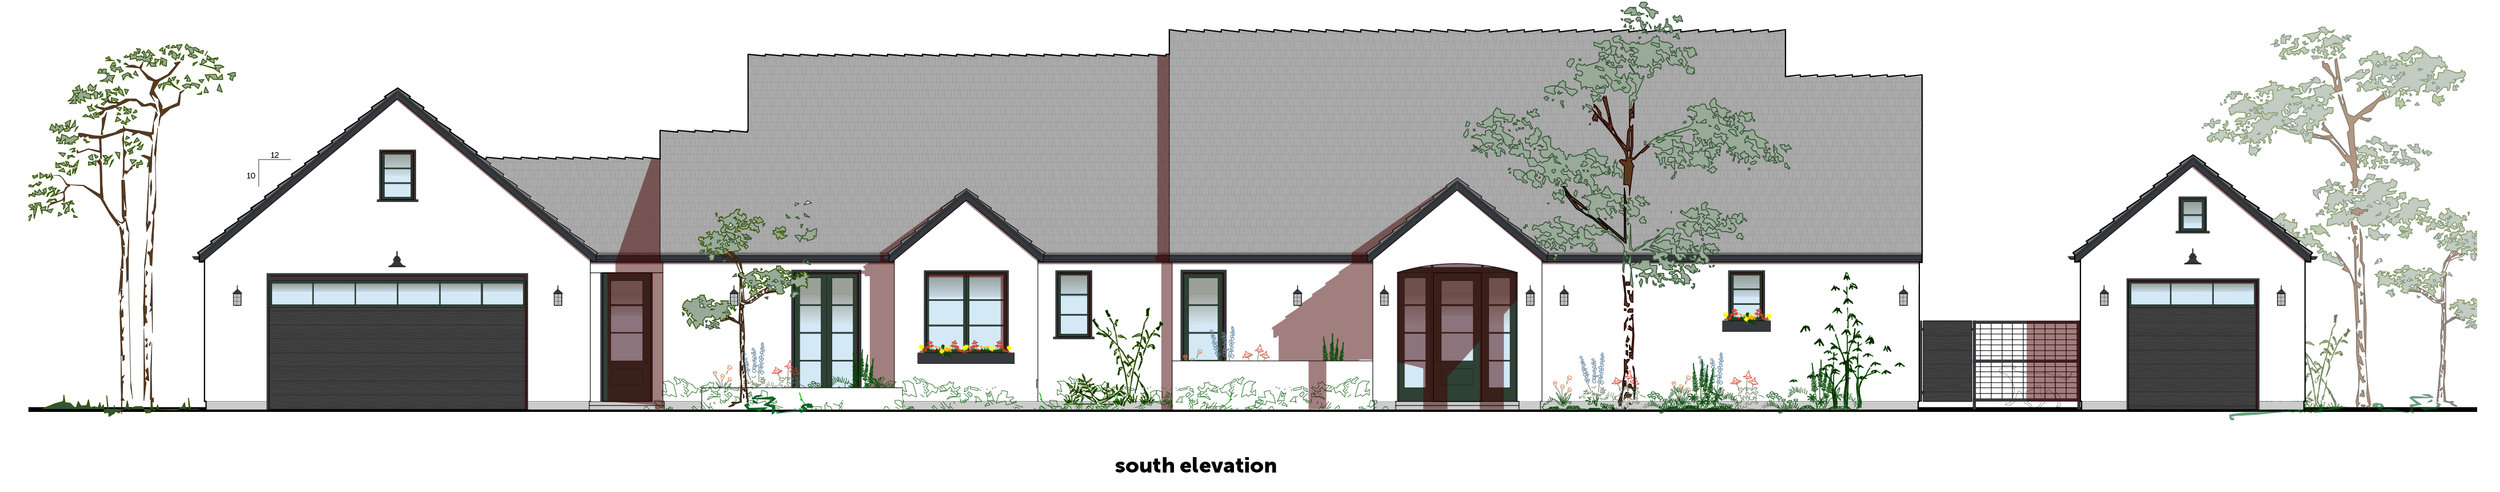 south elevation.jpg